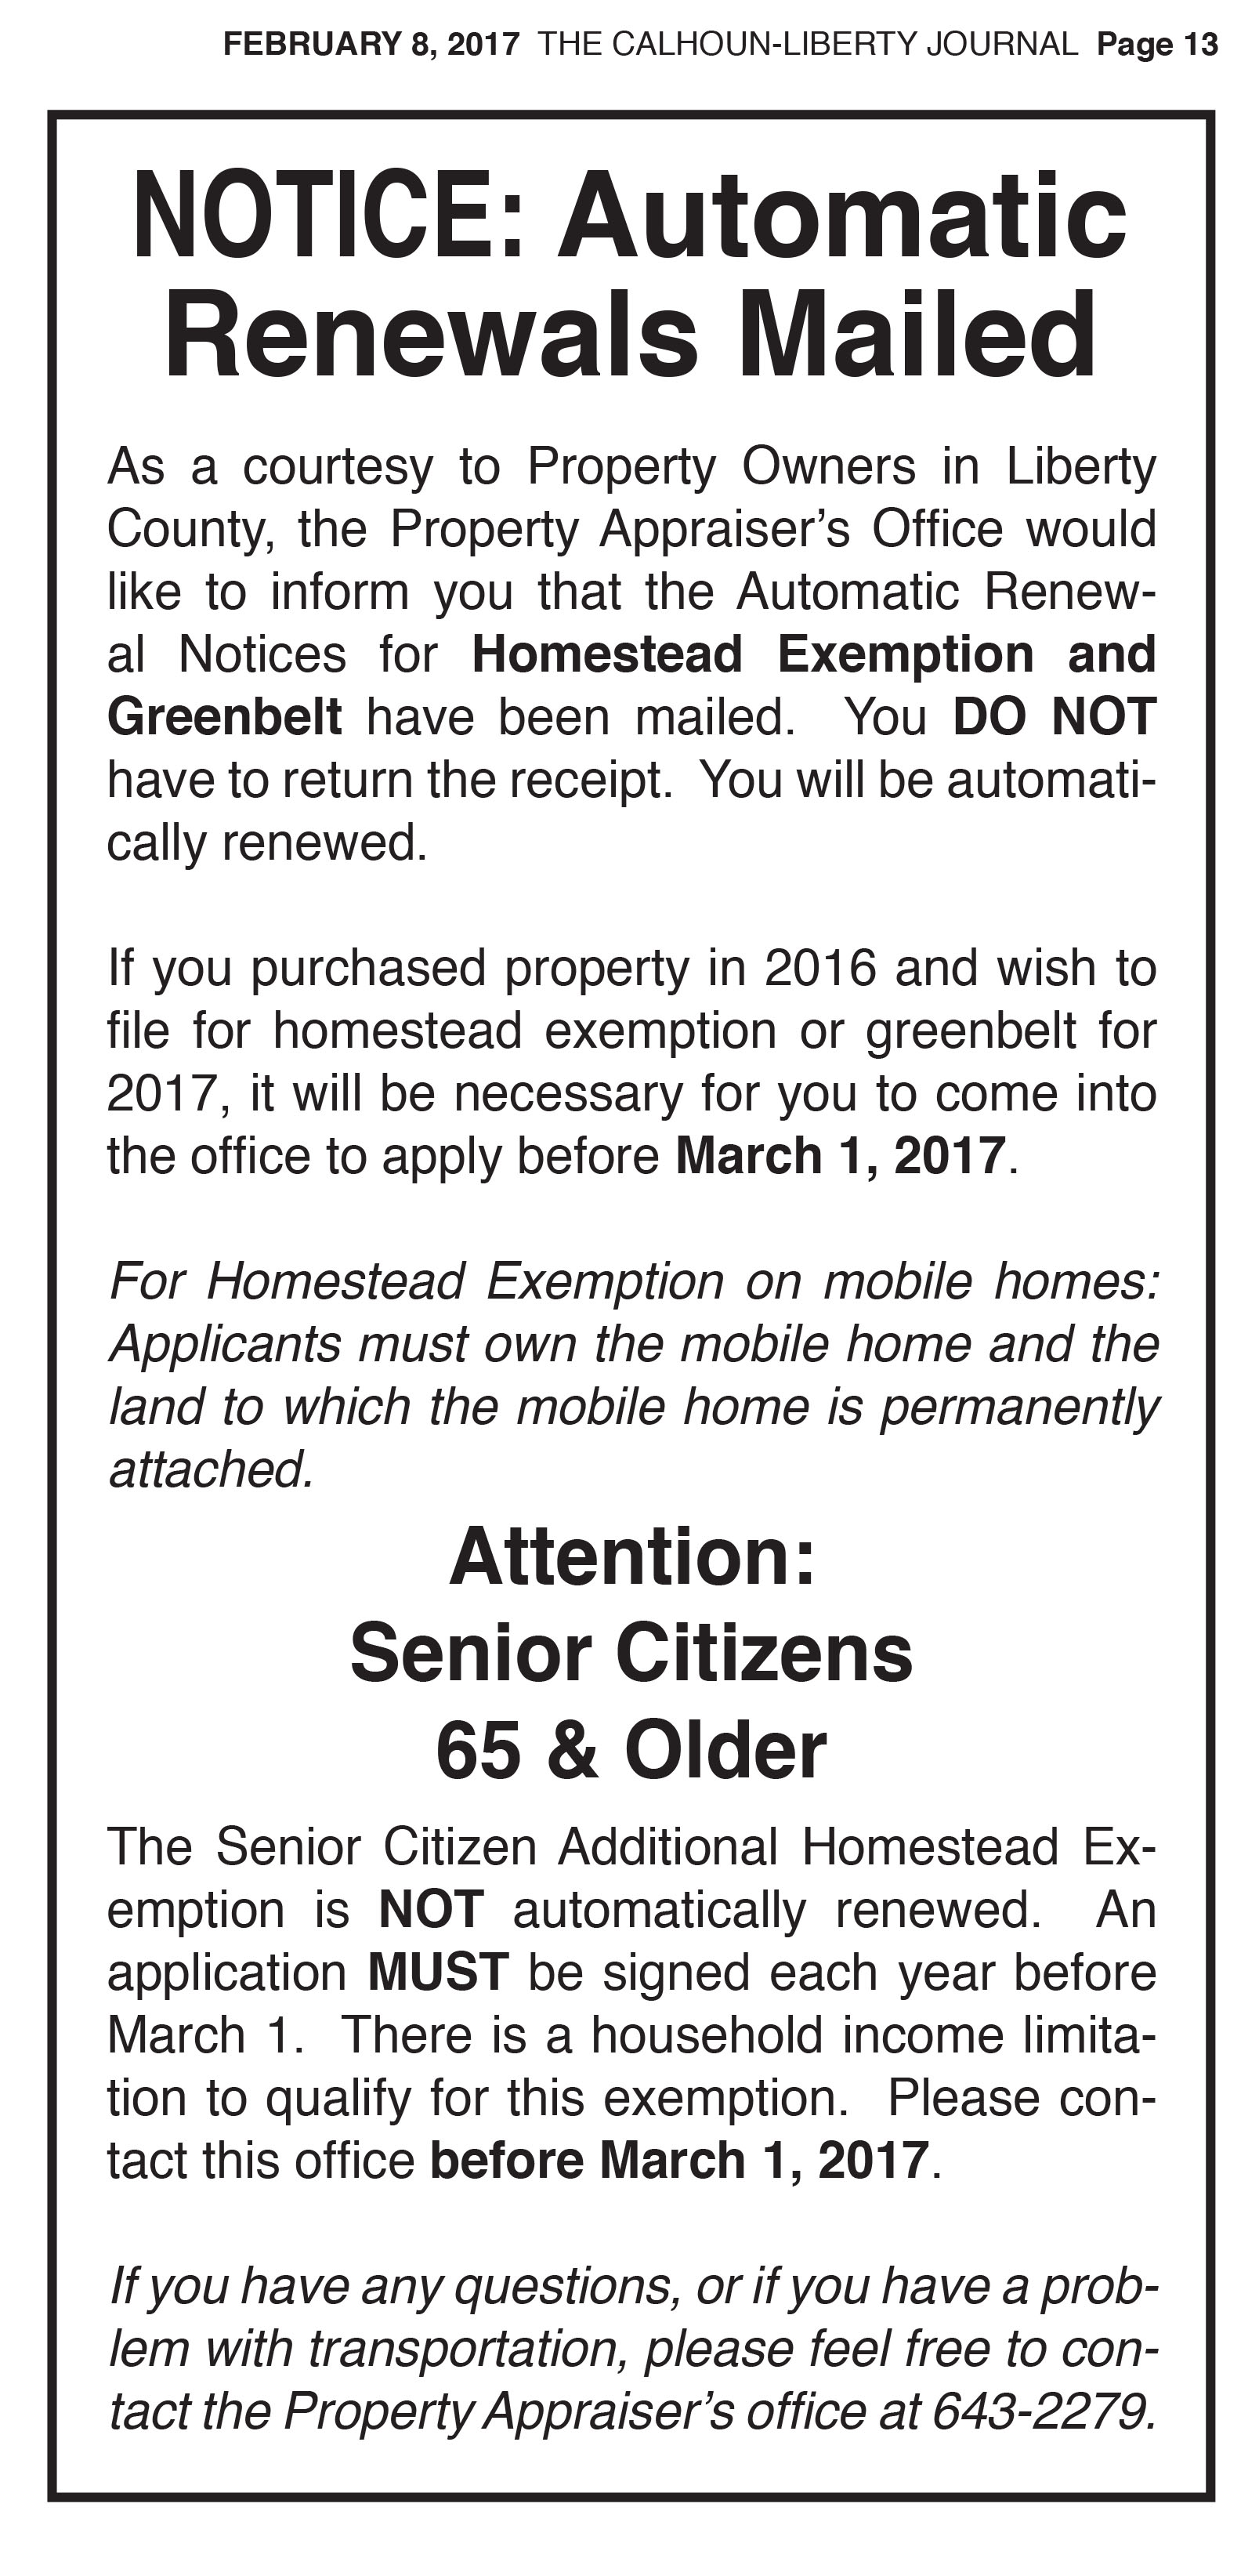 LC Property Appraiser, Automatic Renewal of Homestead Exemption & Greenbelt